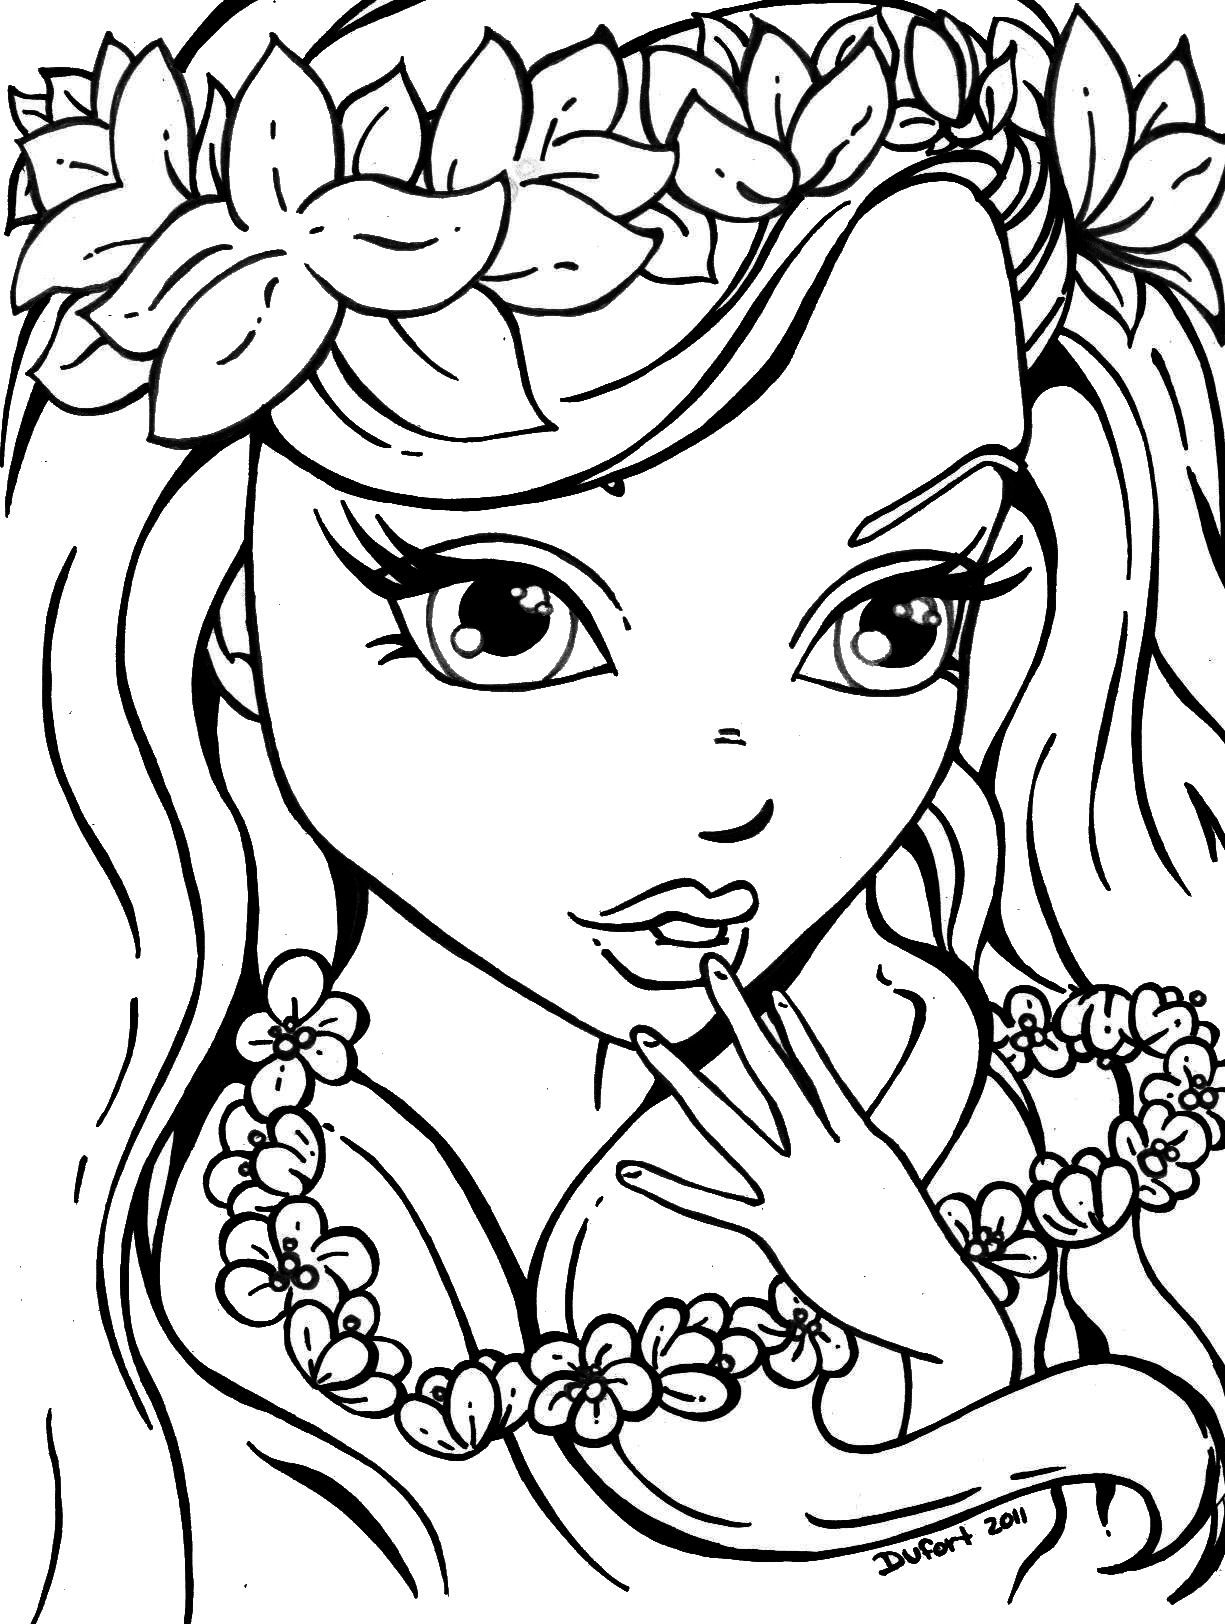 Printable Coloring Pages for Tweens Printable 5g - Save it to your computer